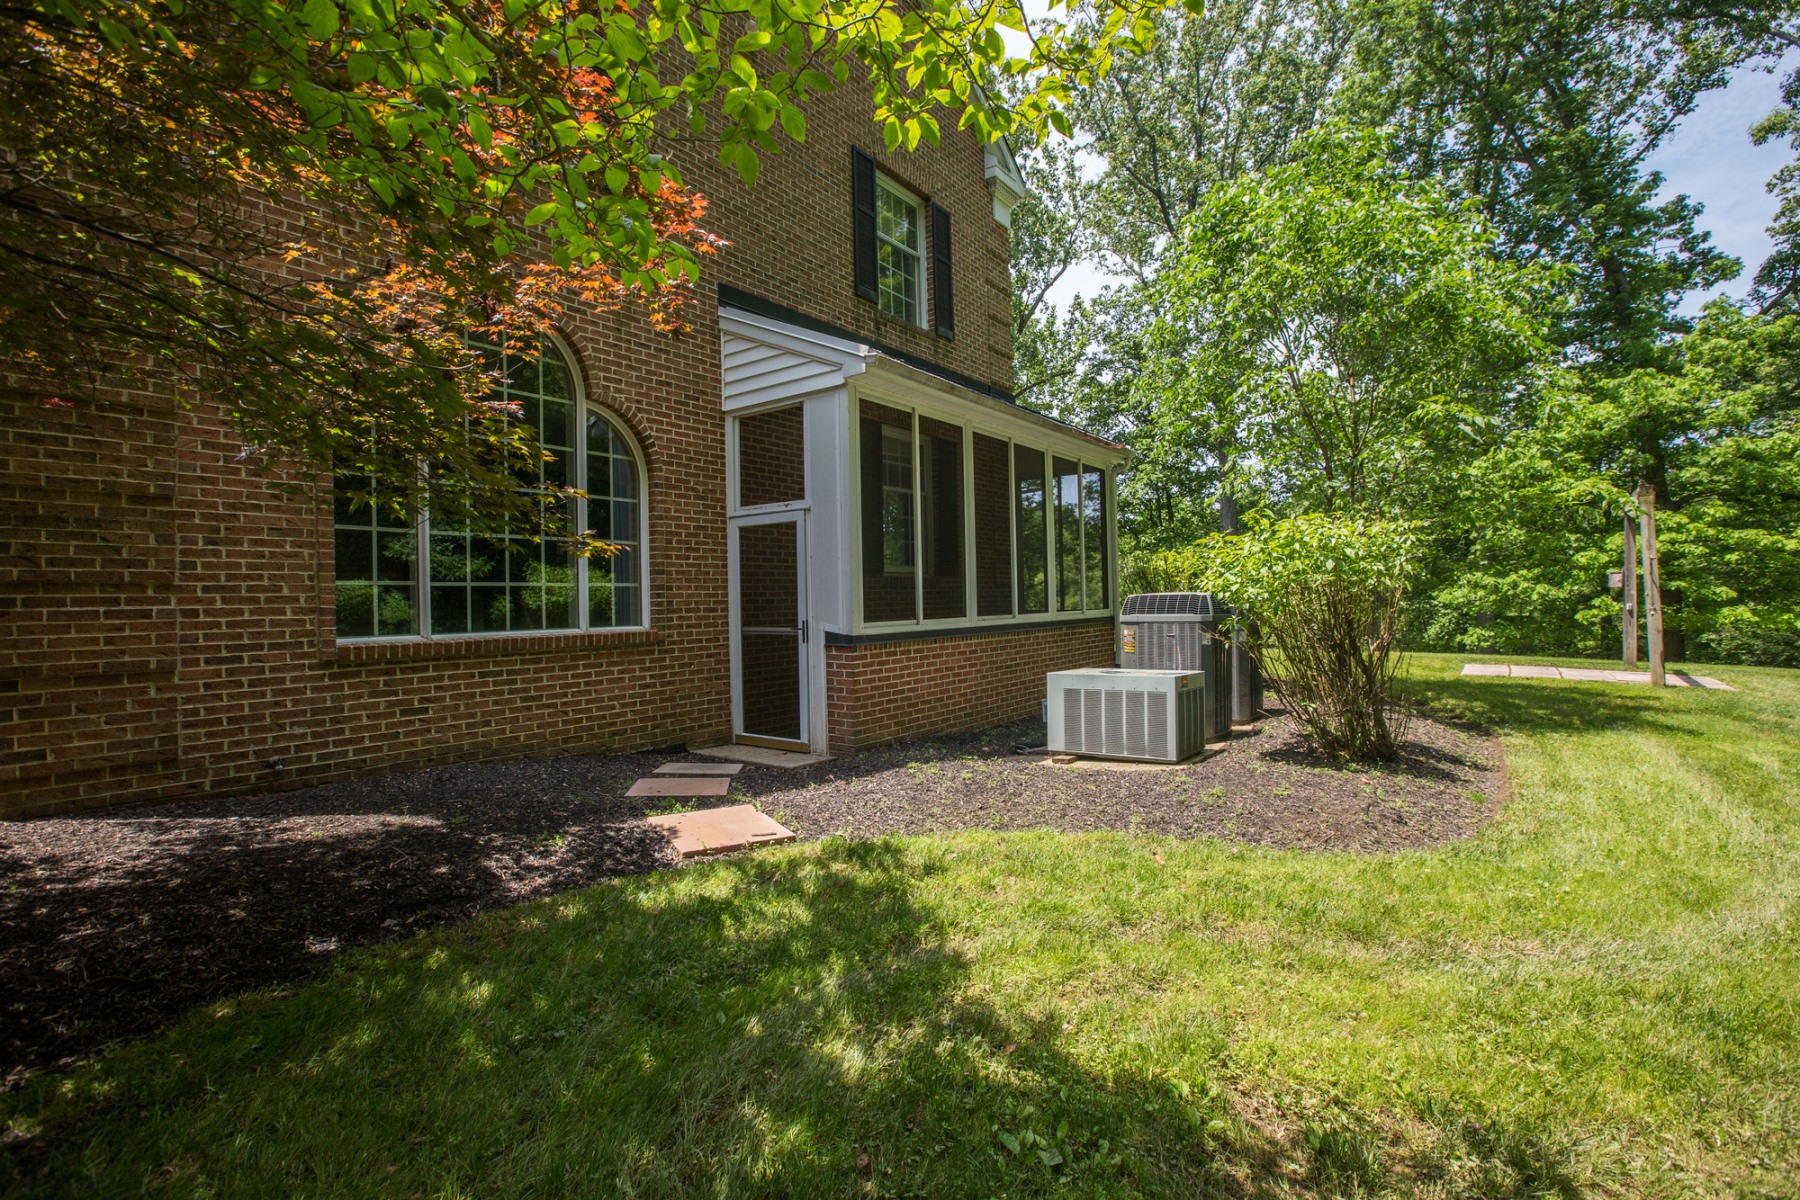 Additional photo for property listing at 13850 Russell Zepp Drive, Clarksville  Clarksville, Maryland 21029 United States